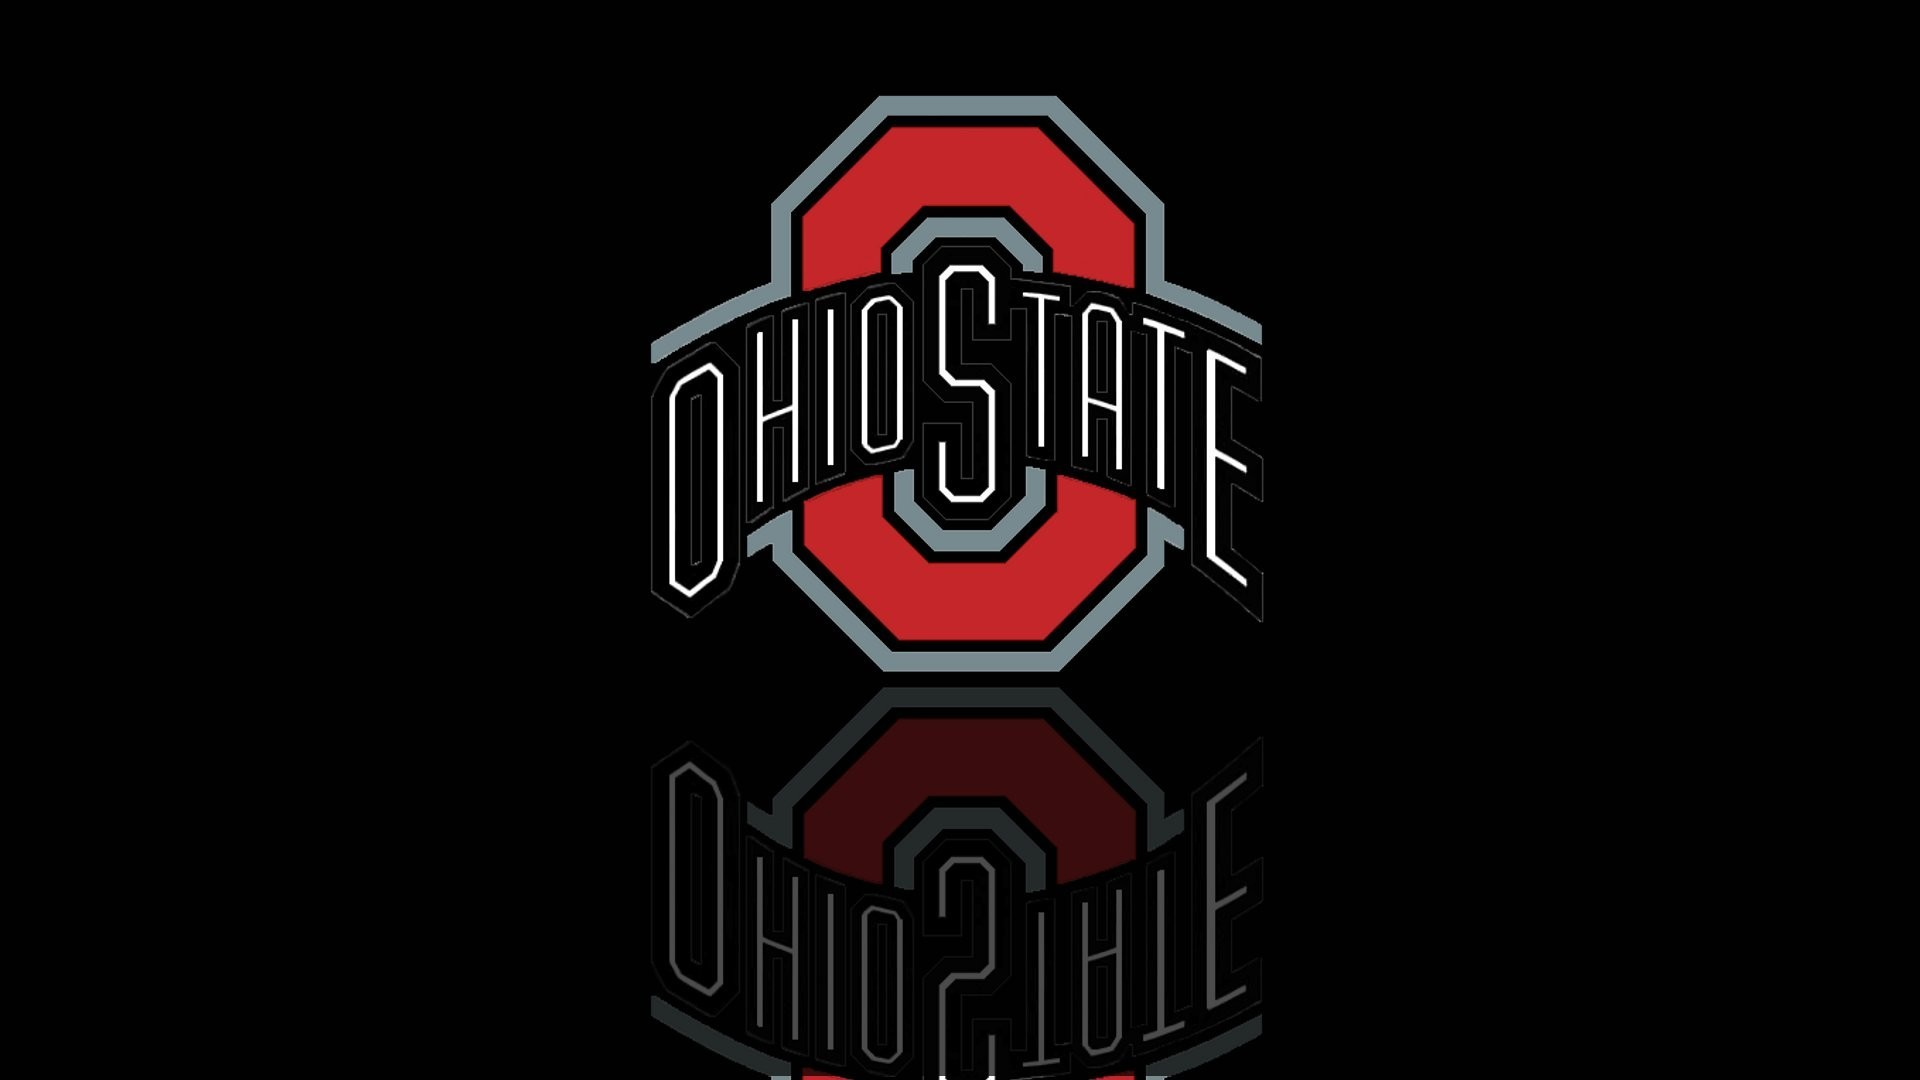 Ohio State Wallpaper 1920x1080 (71+ images)